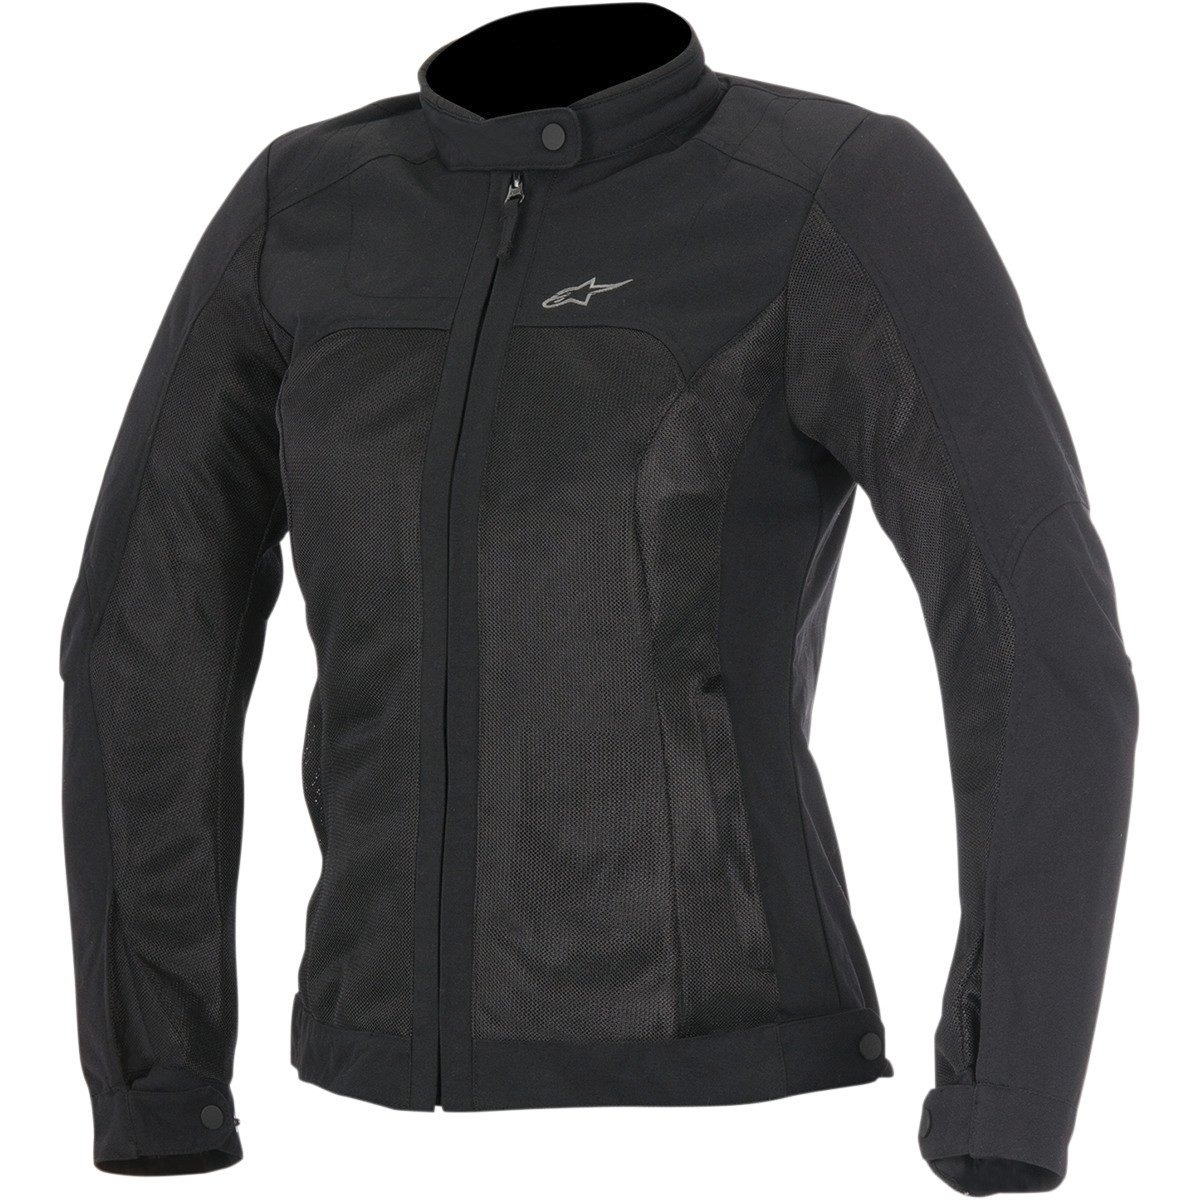 Alpinestars Eloise Air Women's Street Motorcycle Jackets - Black / Small by Alpinestars